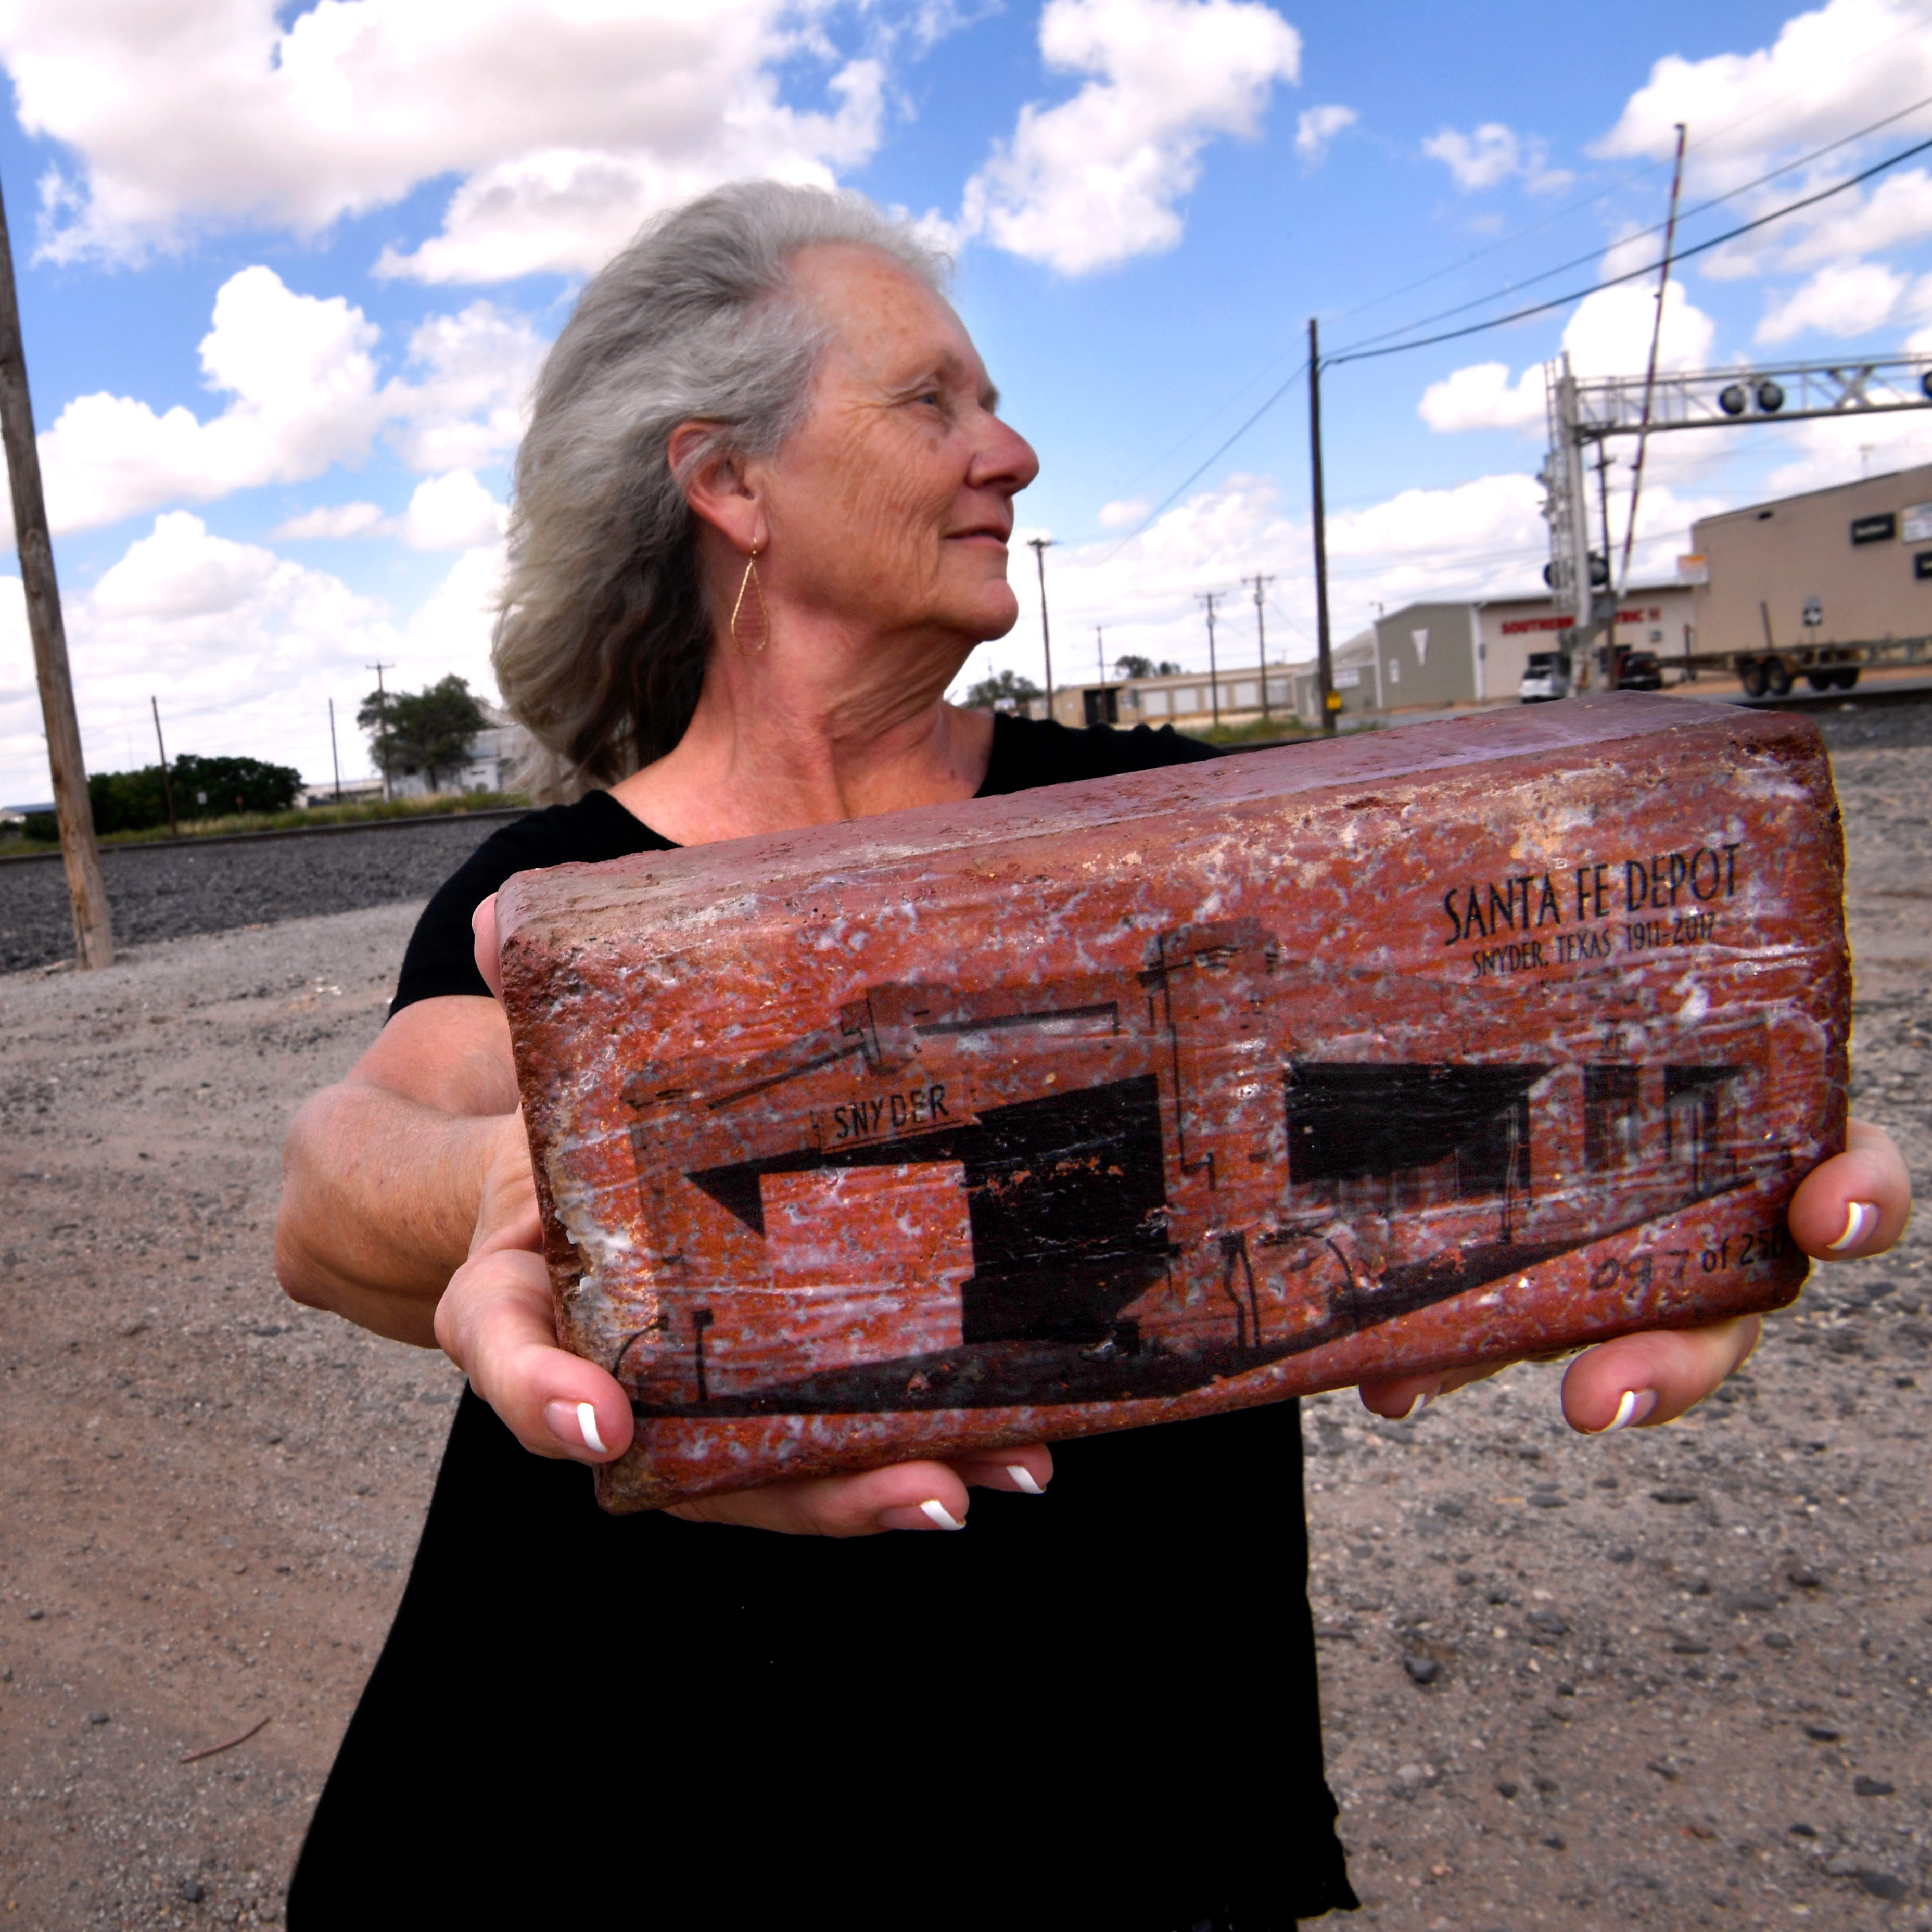 Snyder Depot lives on in memory and film